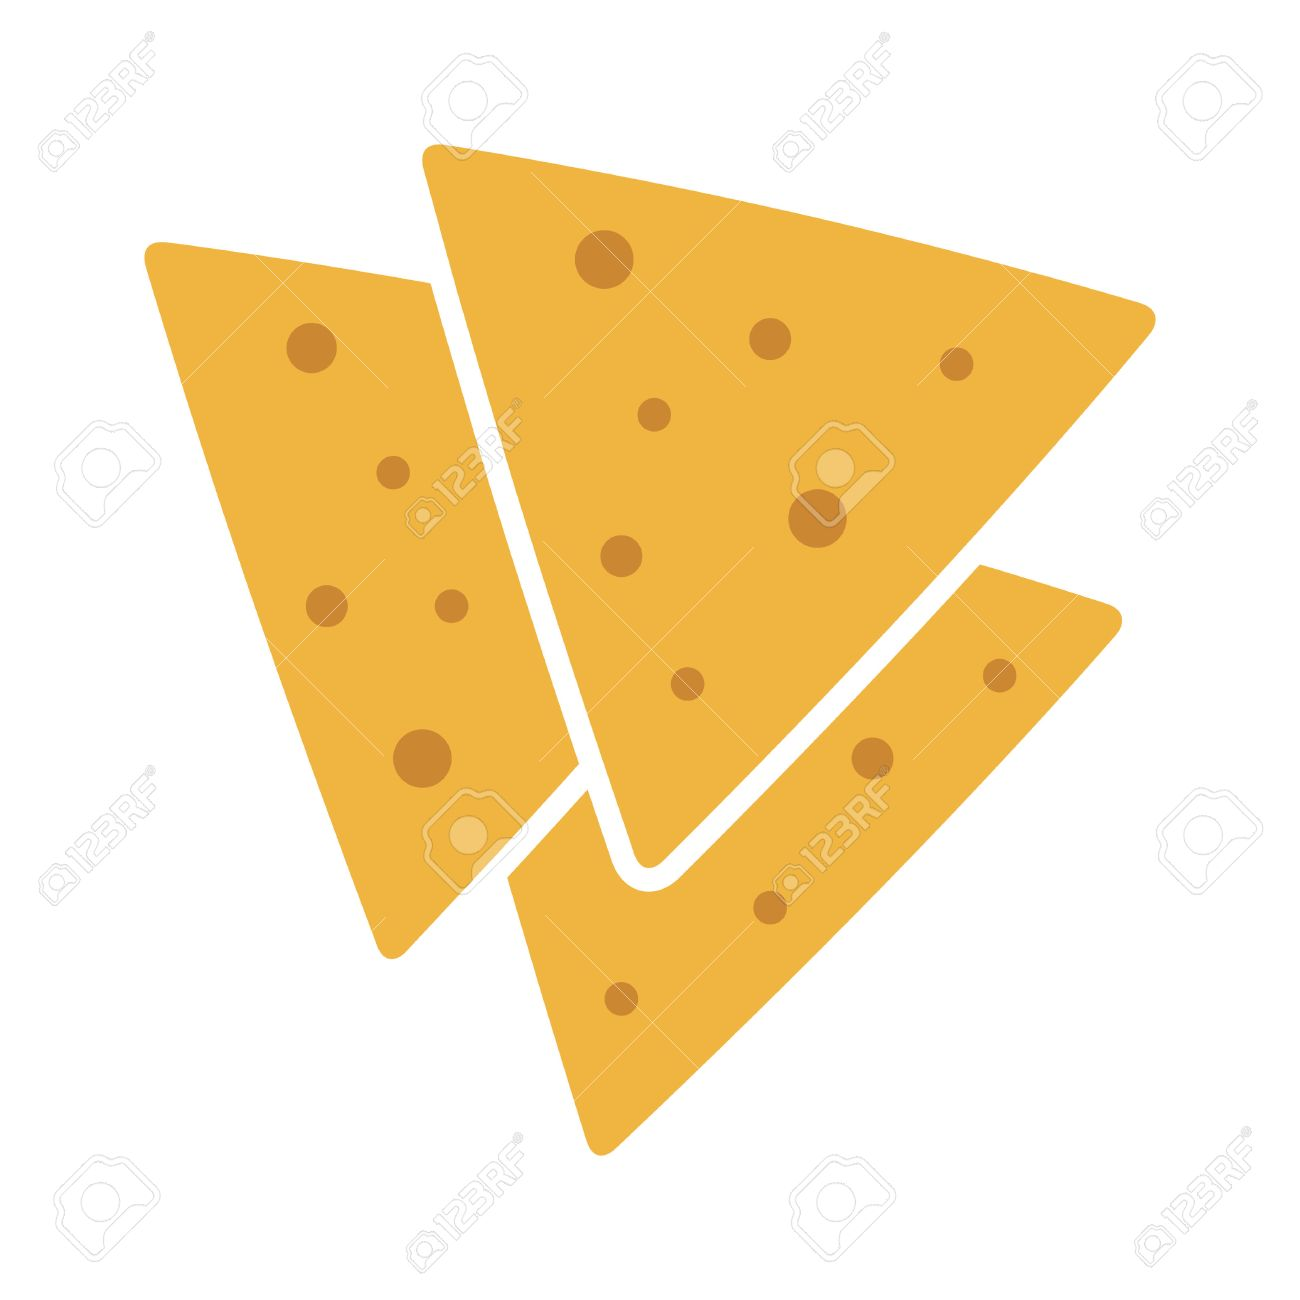 tortilla chips or nachos tortillas flat color icon for apps and rh 123rf com Cartoon Nachos Nachos Clip Art Black and White